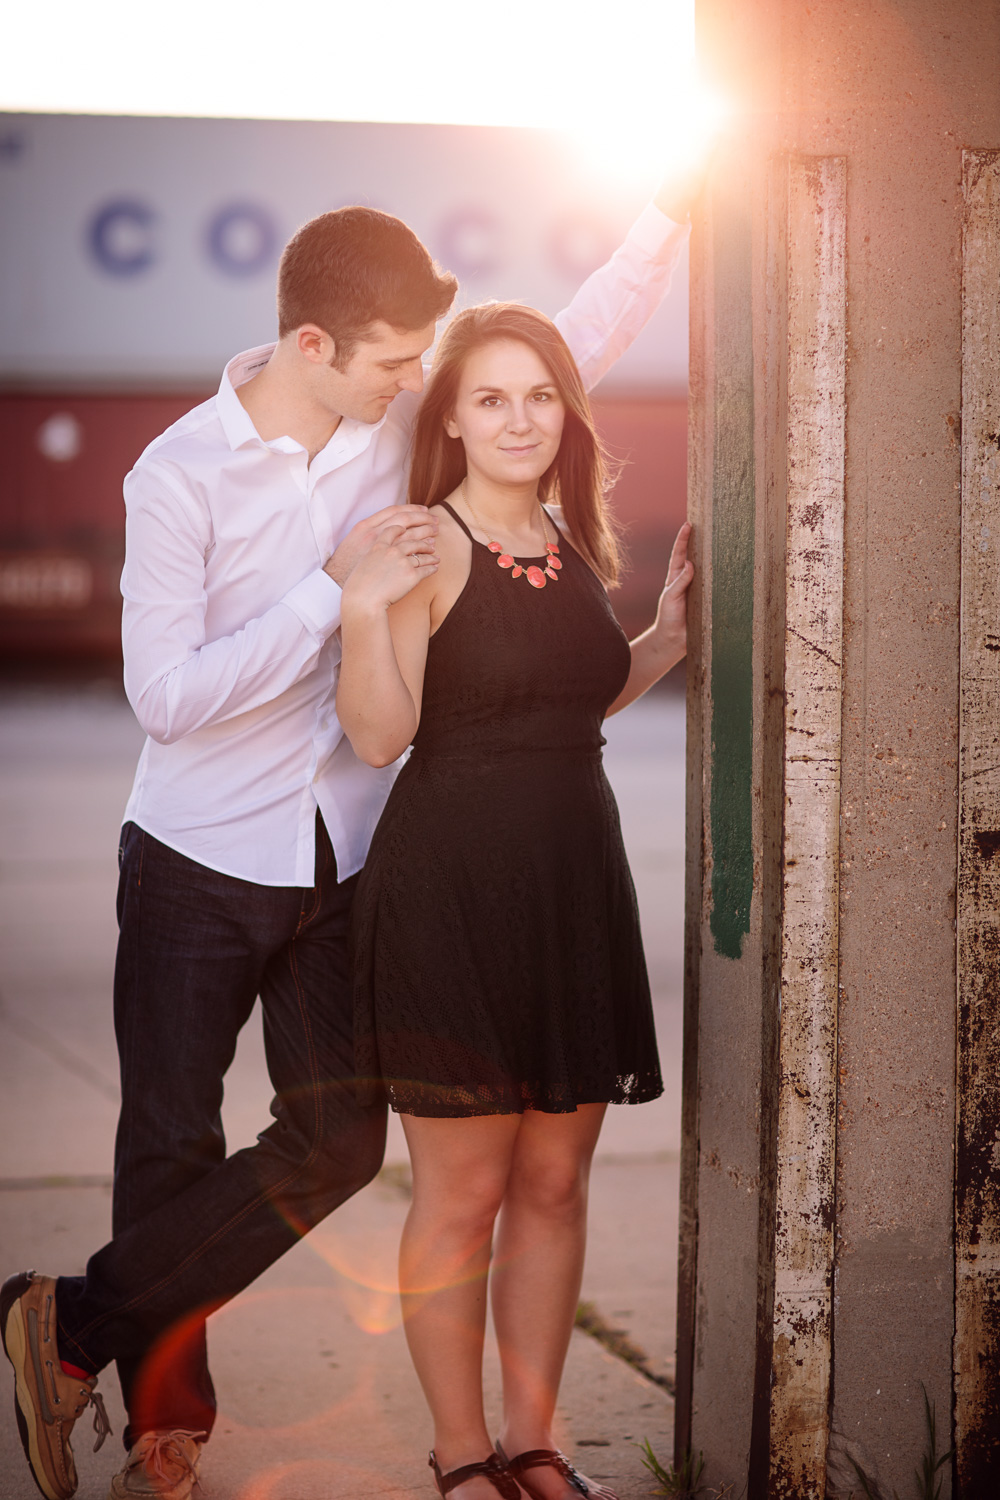 Downtown-Wichita-Engagement-Session-9.jpg